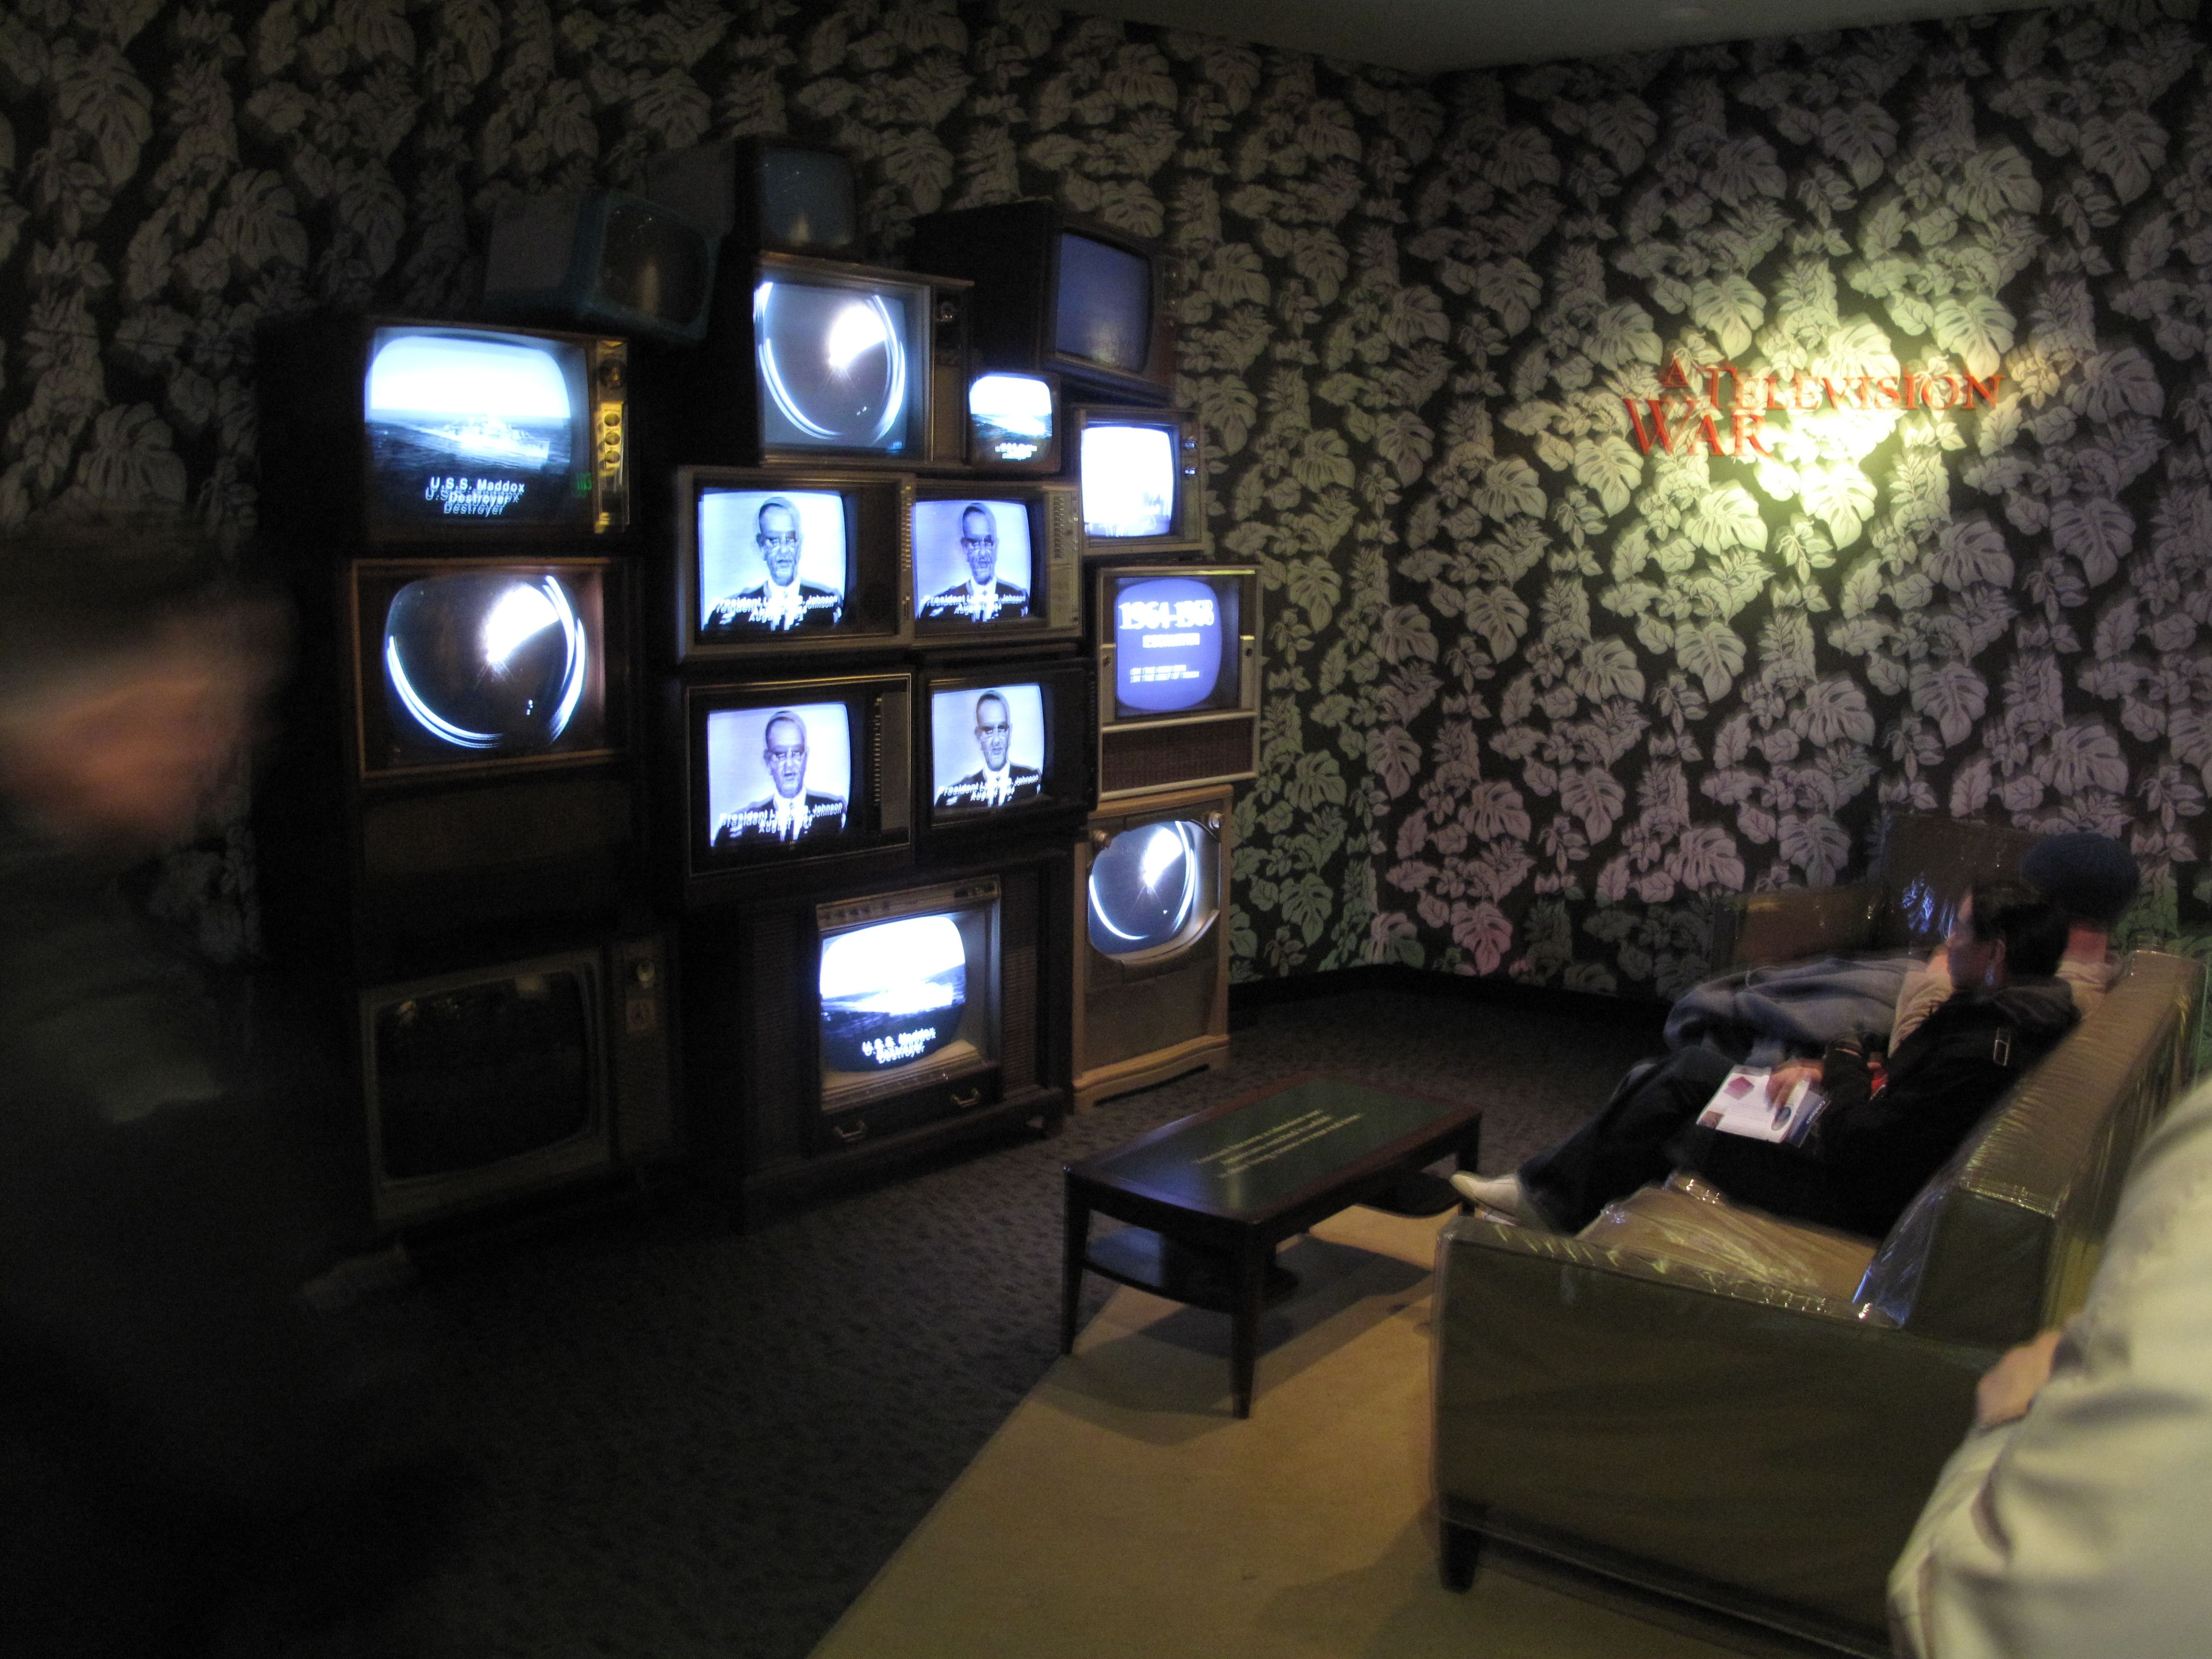 Free and Cheap TV: So Many Options to Choose From | Money Talks News